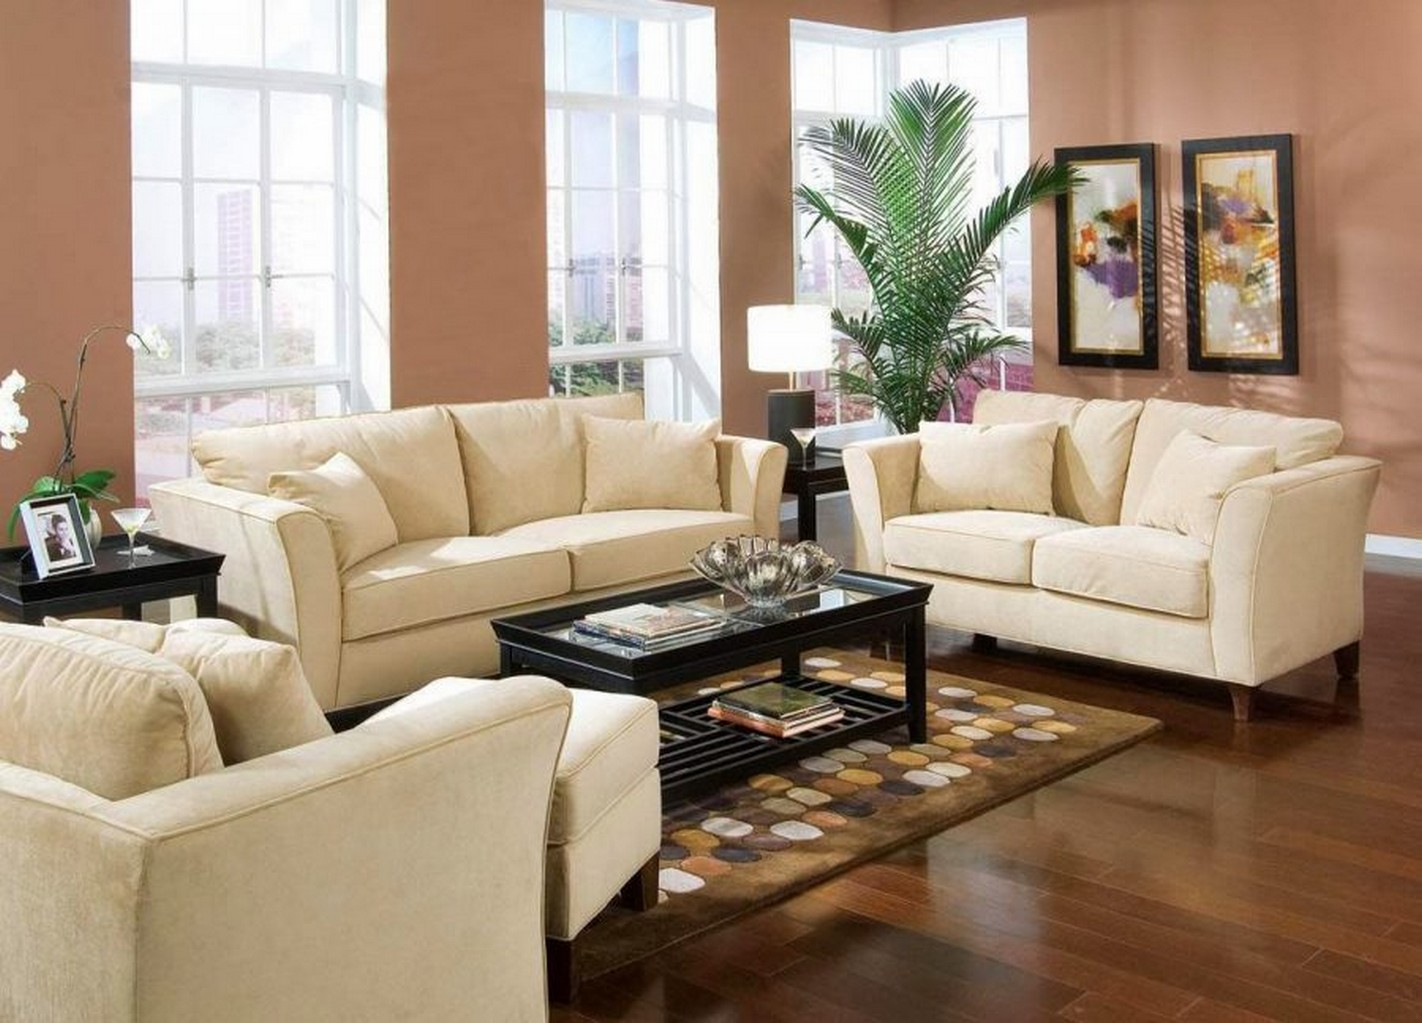 Living room furniture ideas for small rooms